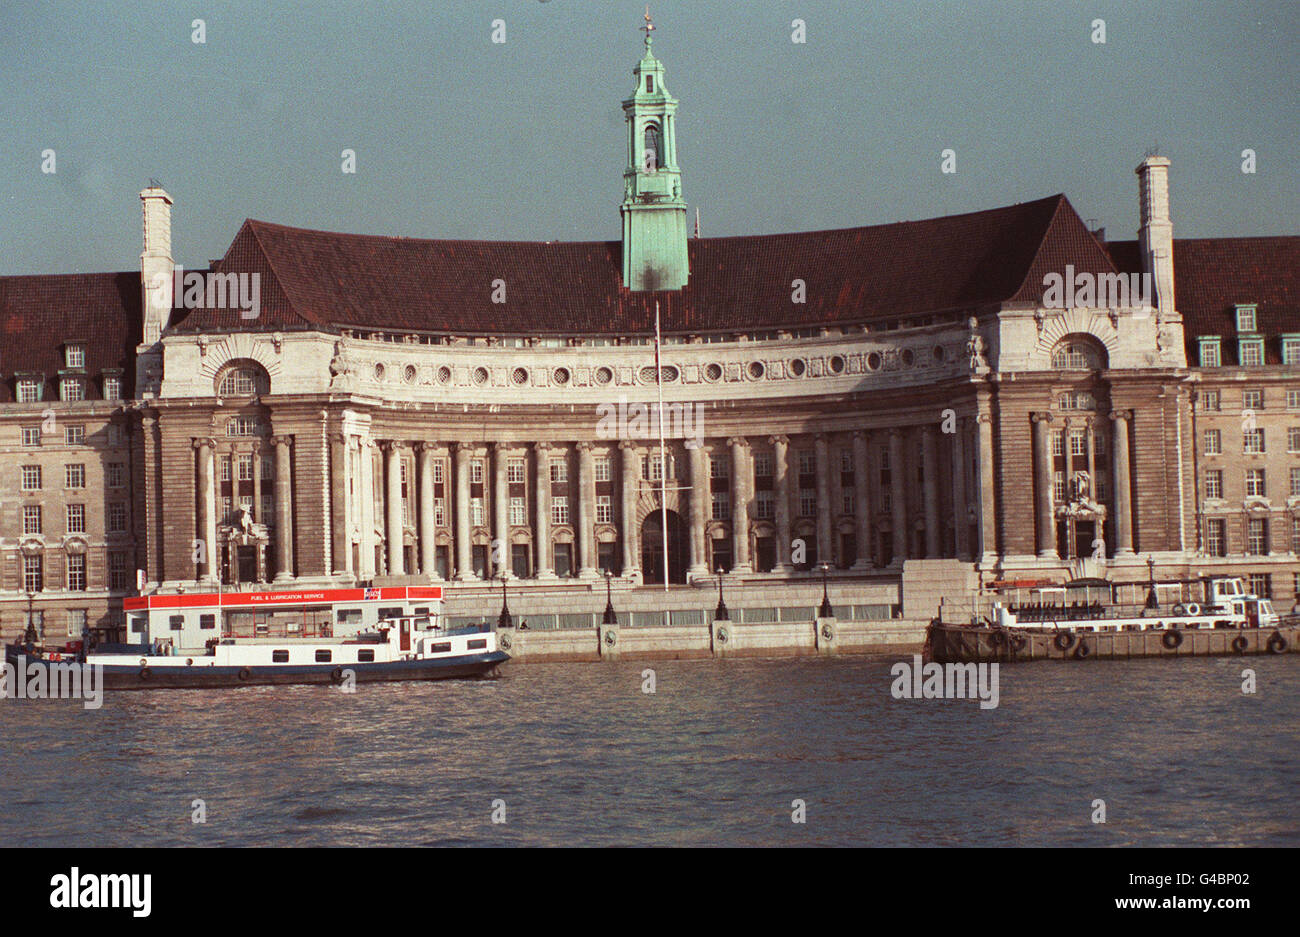 PA NEWS PHOTO MARCH 1990 COUNTY HALL, LONDON FORMER HEADQUARTERS OF THE GLC GREATER LONDON COUNCIL - Stock Image